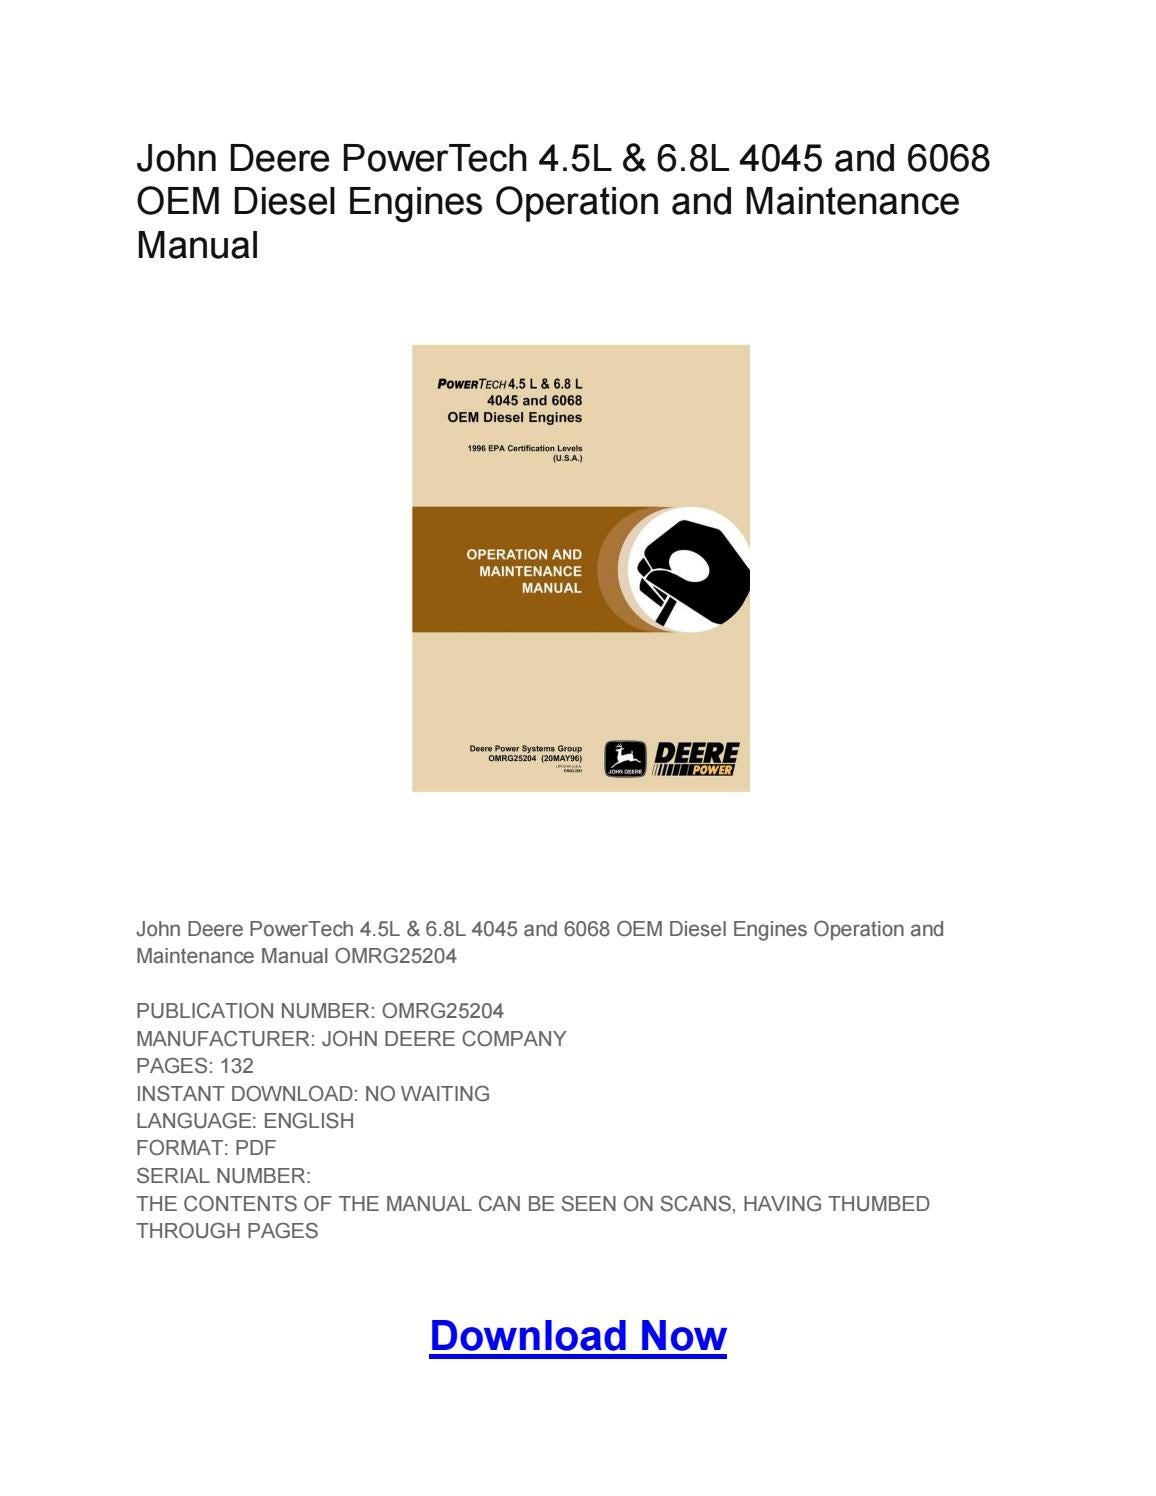 John Deere PowerTech 4.5L & 6.8L 4045 and 6068 OEM Diesel Engines Operation  and Maintenance Manual by Larry Sprouse - issuu